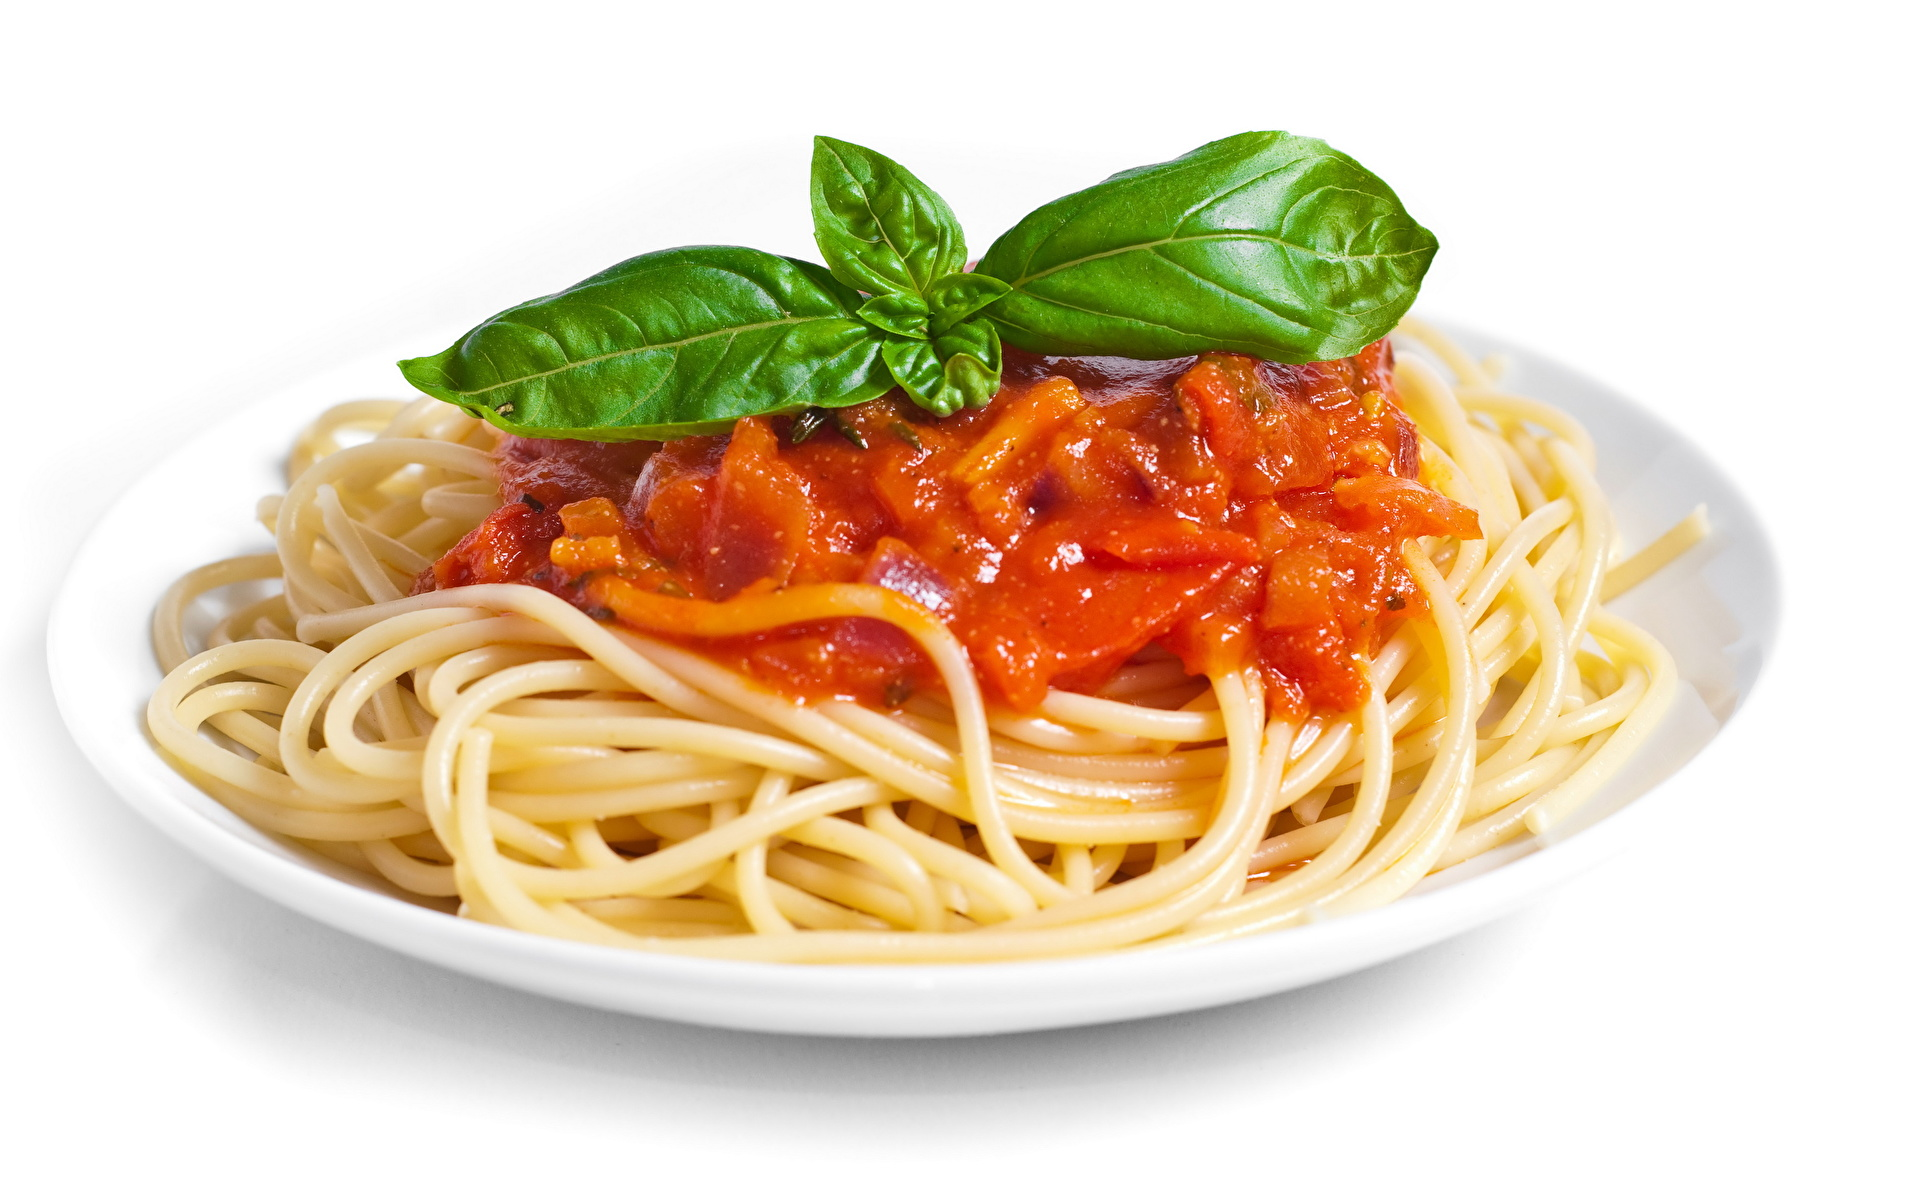 the similarities and differences between the spaghetti and macaroni western film genres Directed by quentin tarantino's is what you would call a spaghetti western many differences and similarities between the the film genres of.